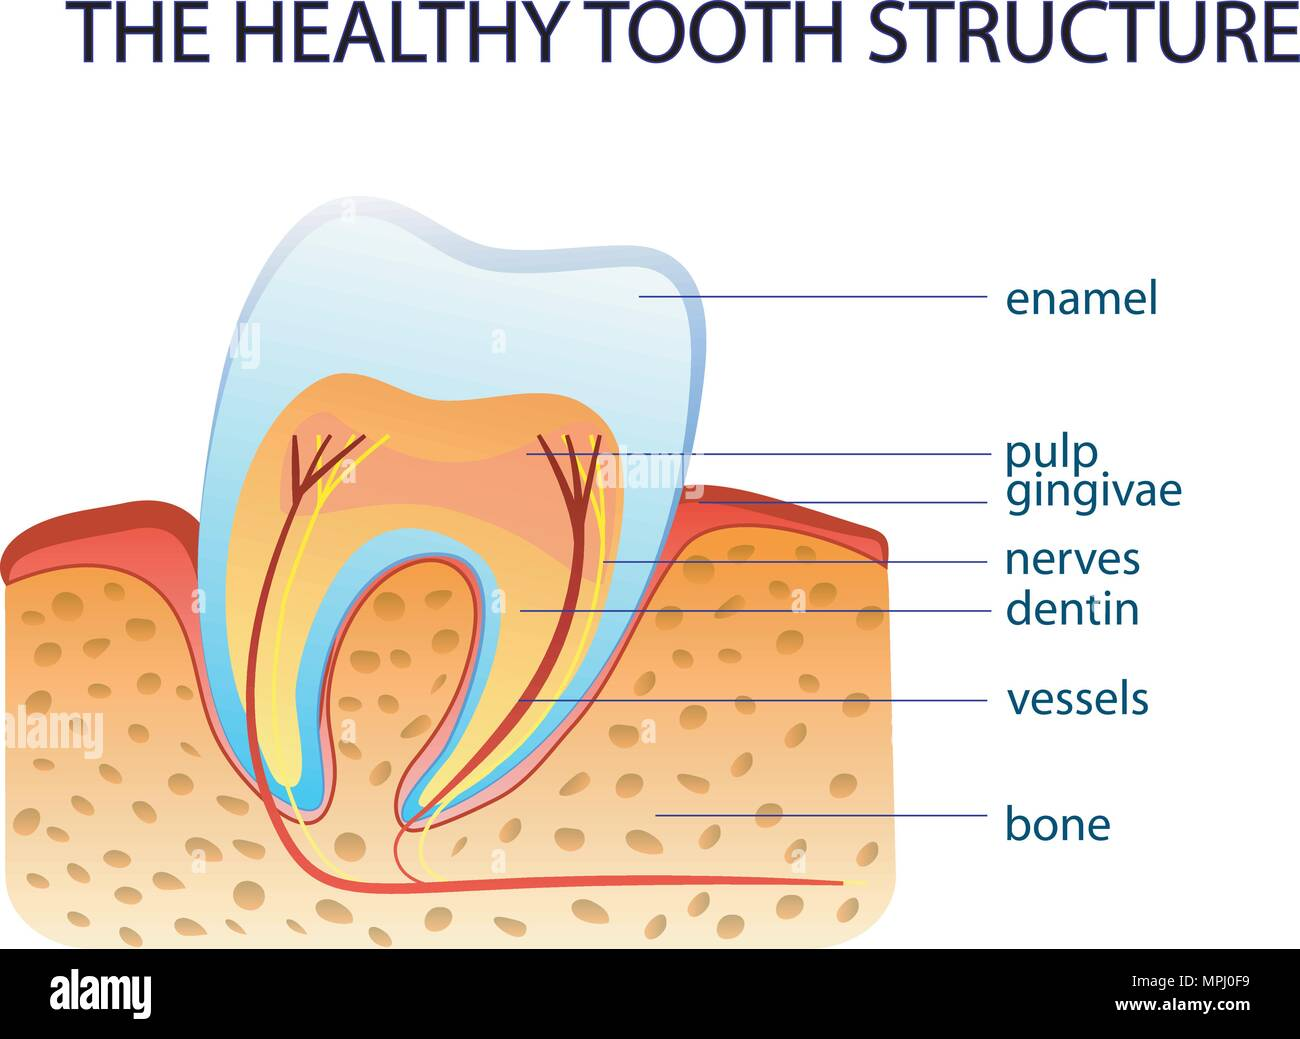 ILLUSTRFTION OF THE HEALTHY TOOTH STRUCTURE. anatomy Stock Vector ...